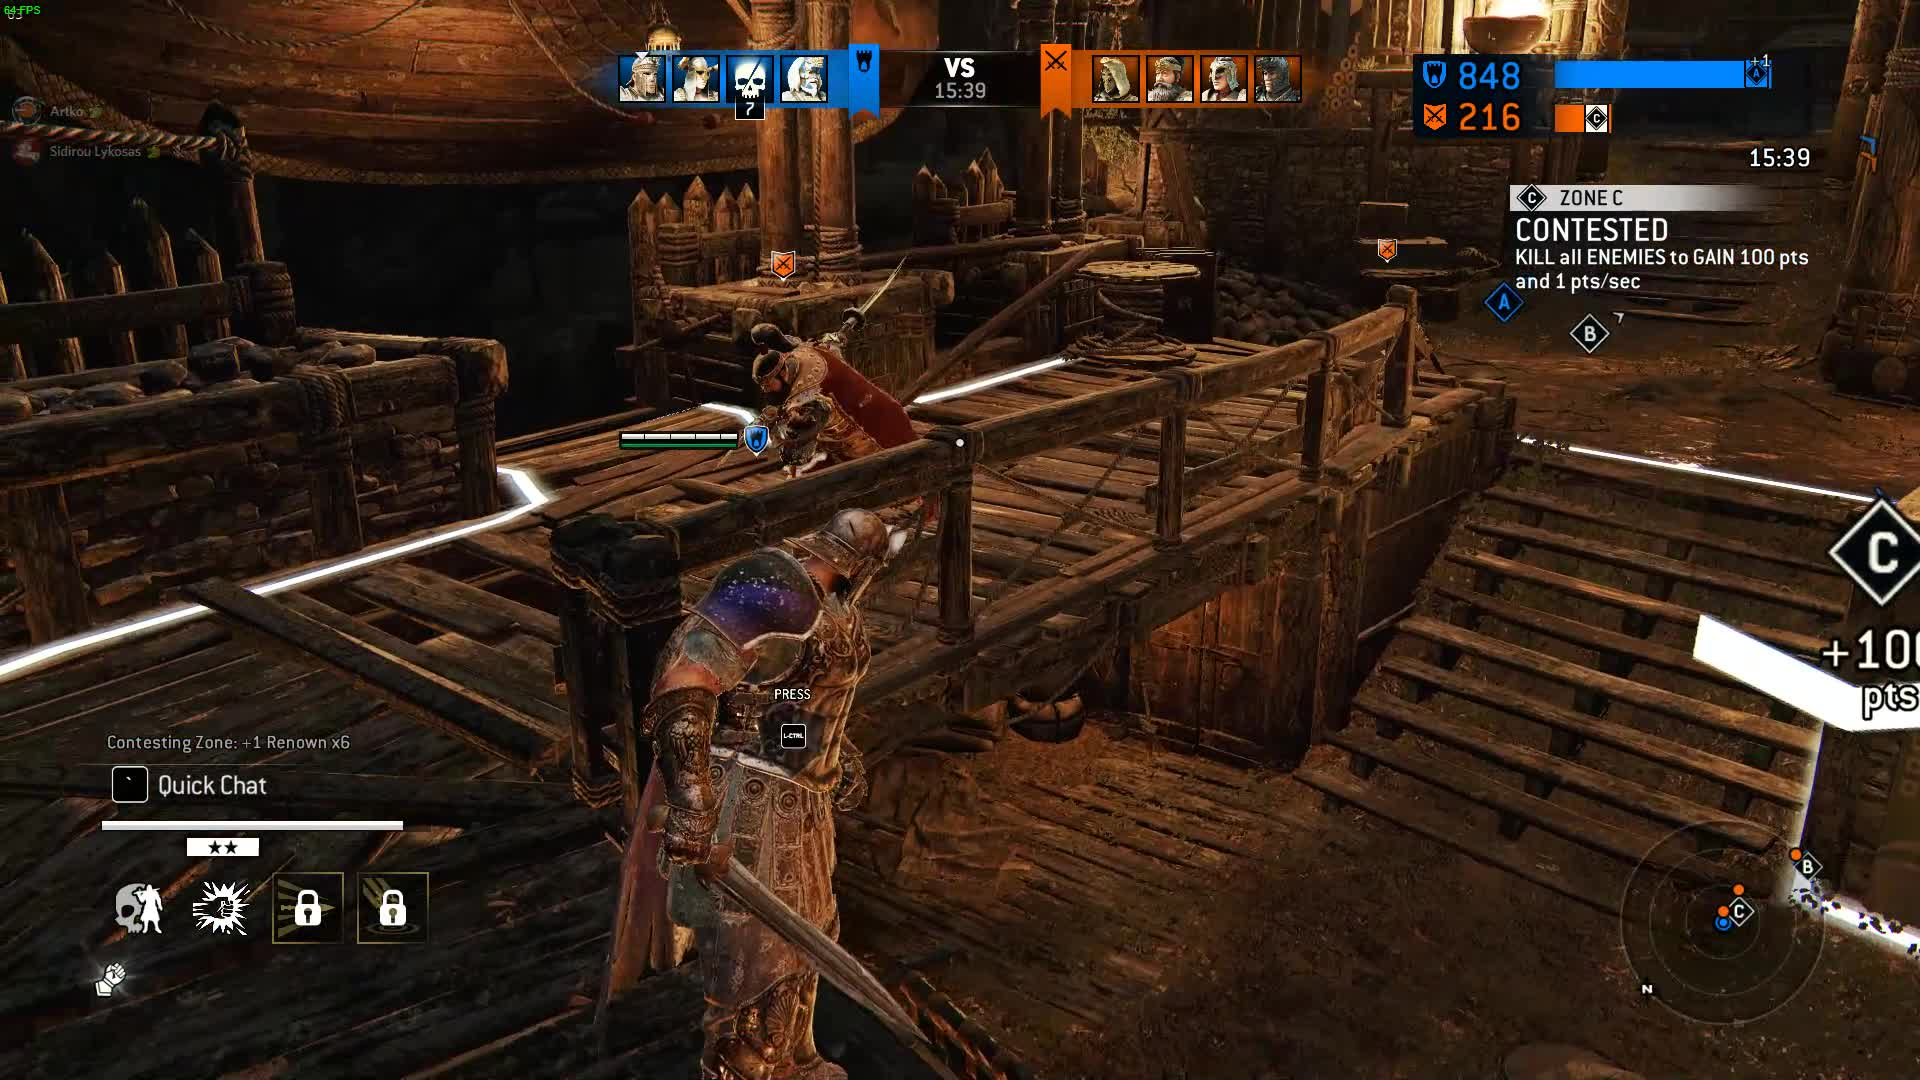 forhonor, For Honor 2019.03.31 - 23.57.20.19.DVR GIFs